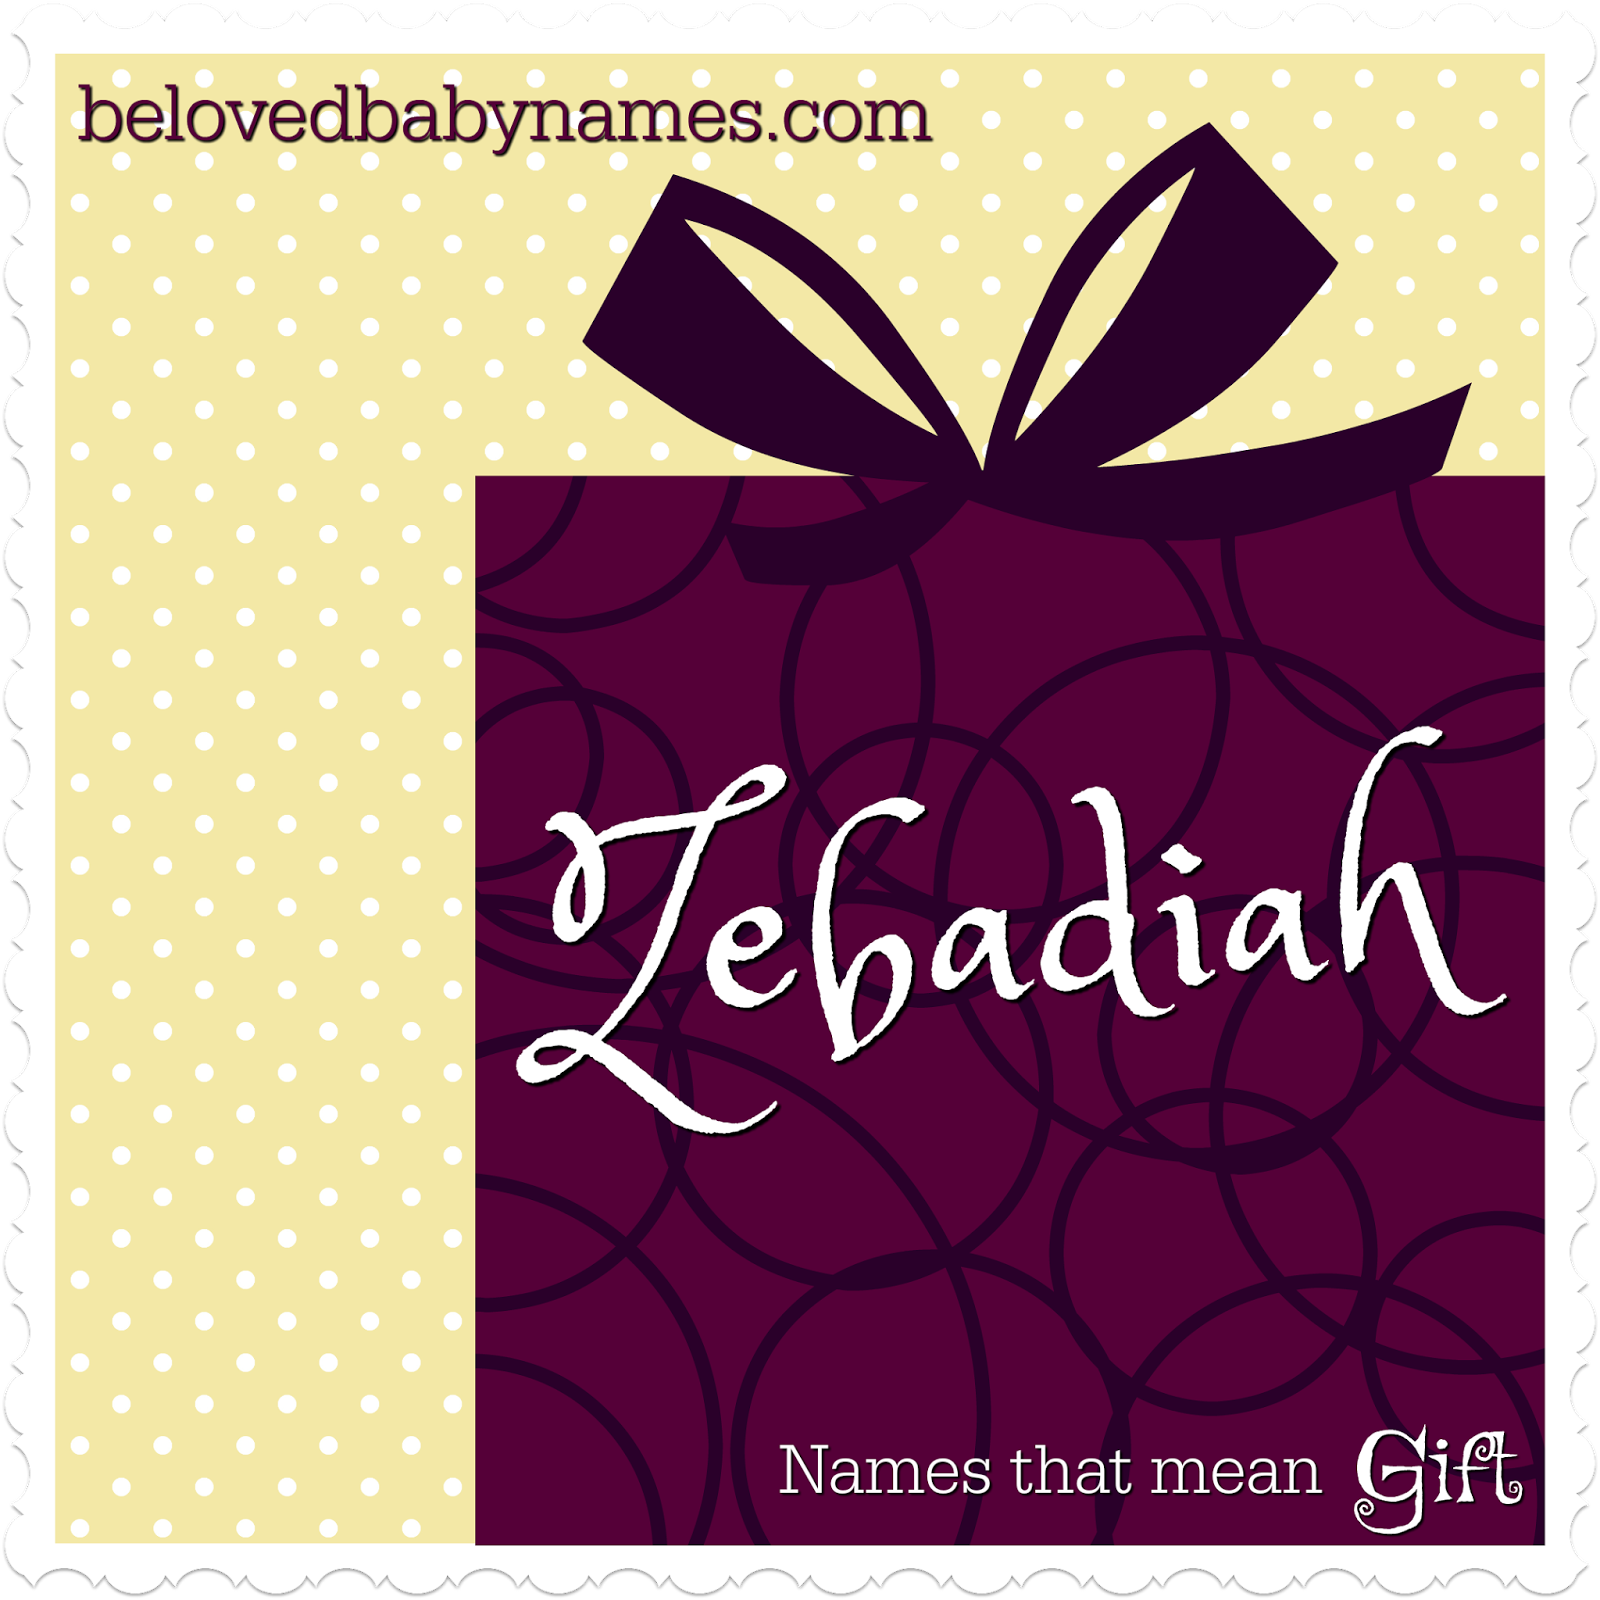 Beloved baby names 21 wonderful names that mean gift an uncommon name meaning gift thats unlikely to take off thijs is a great choice it also makes a nice matthew alternative and a good way to honor a negle Choice Image